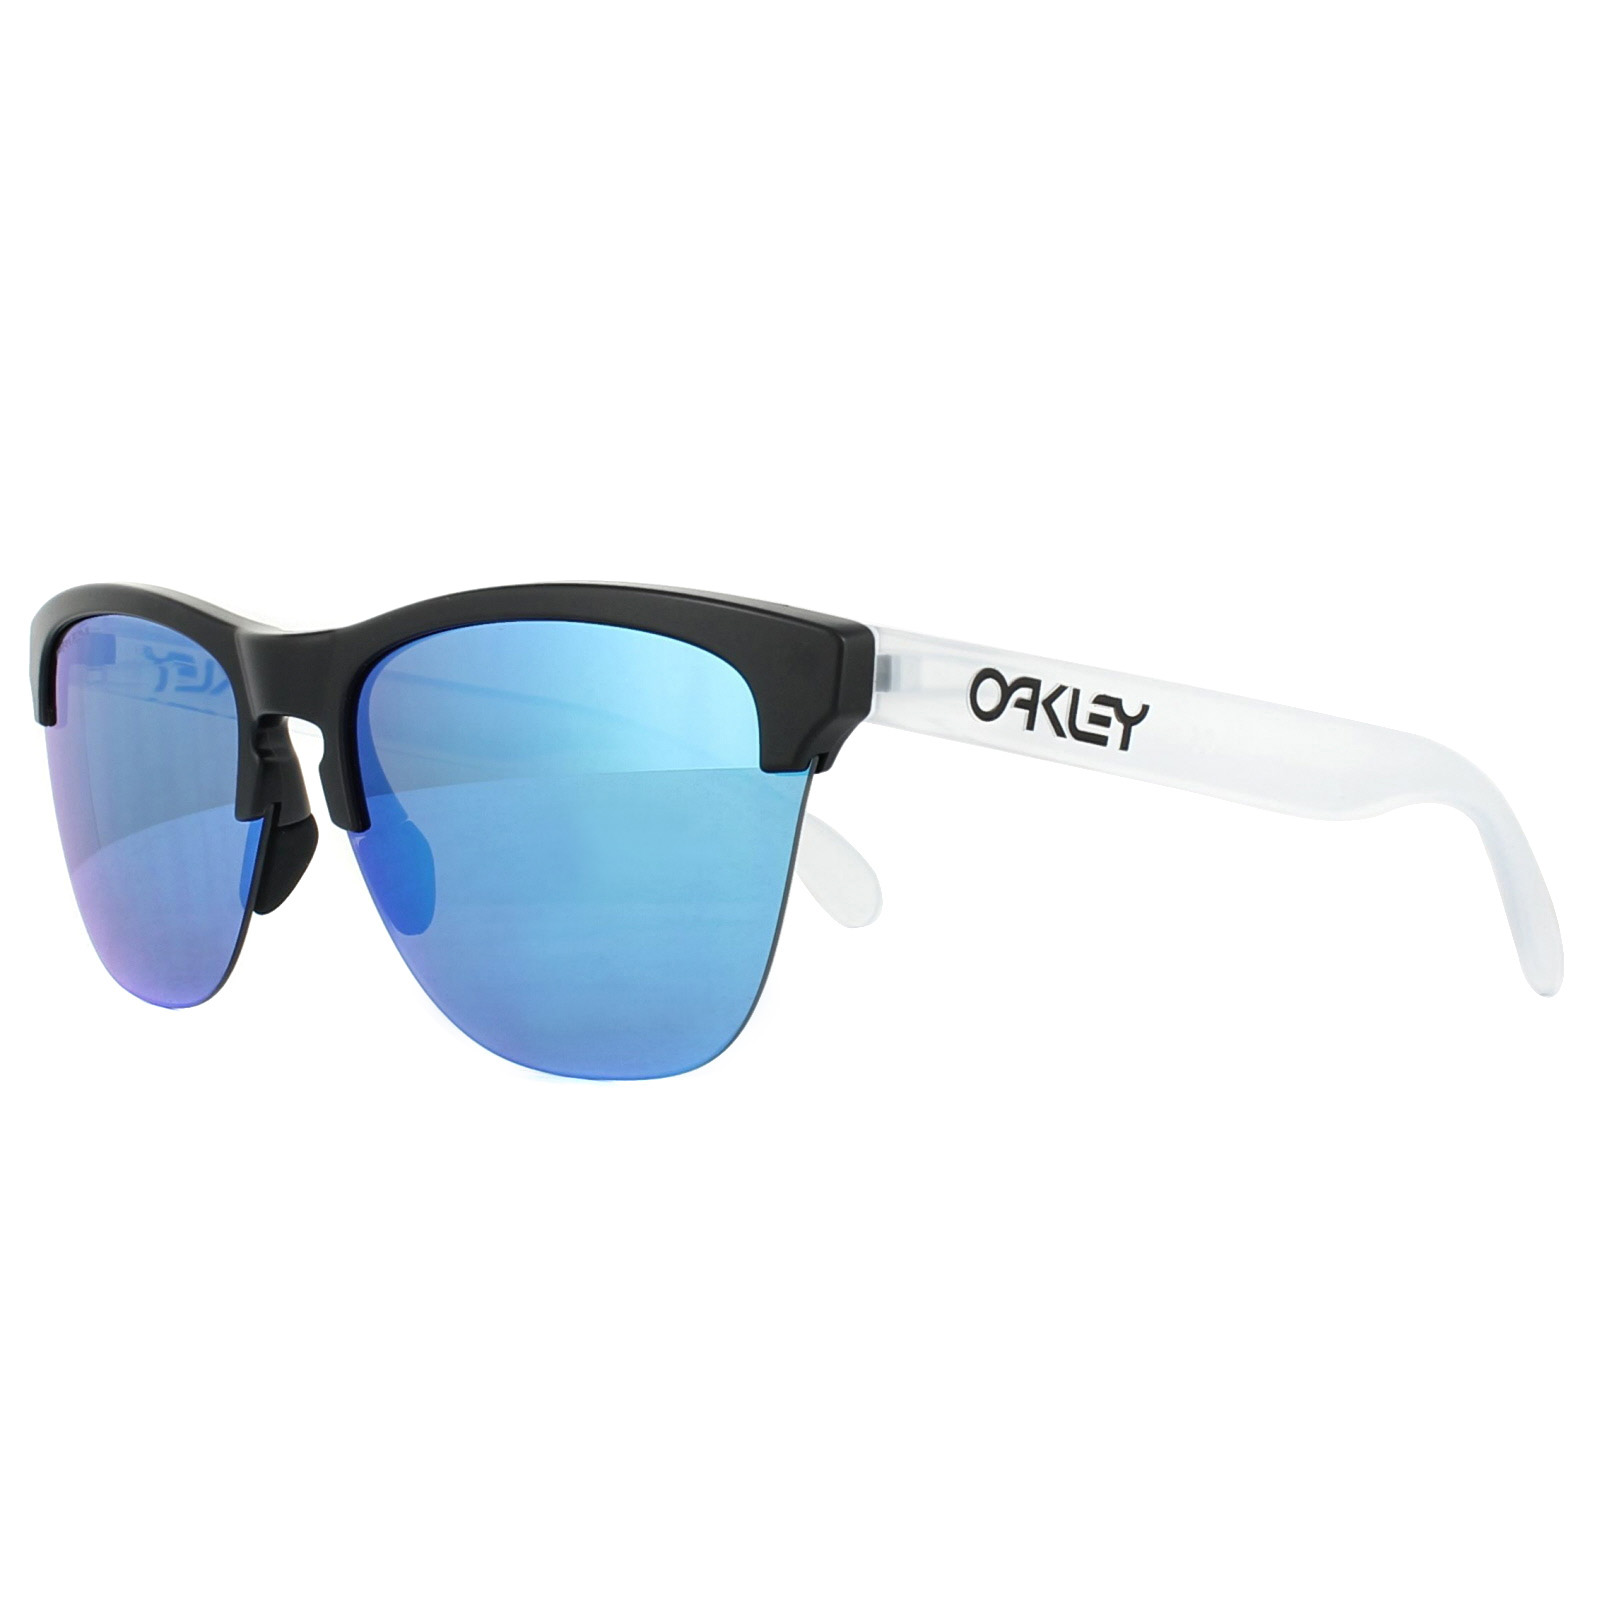 112aacbc311 Cheap Oakley Frogskins Lite Sunglasses - Discounted Sunglasses